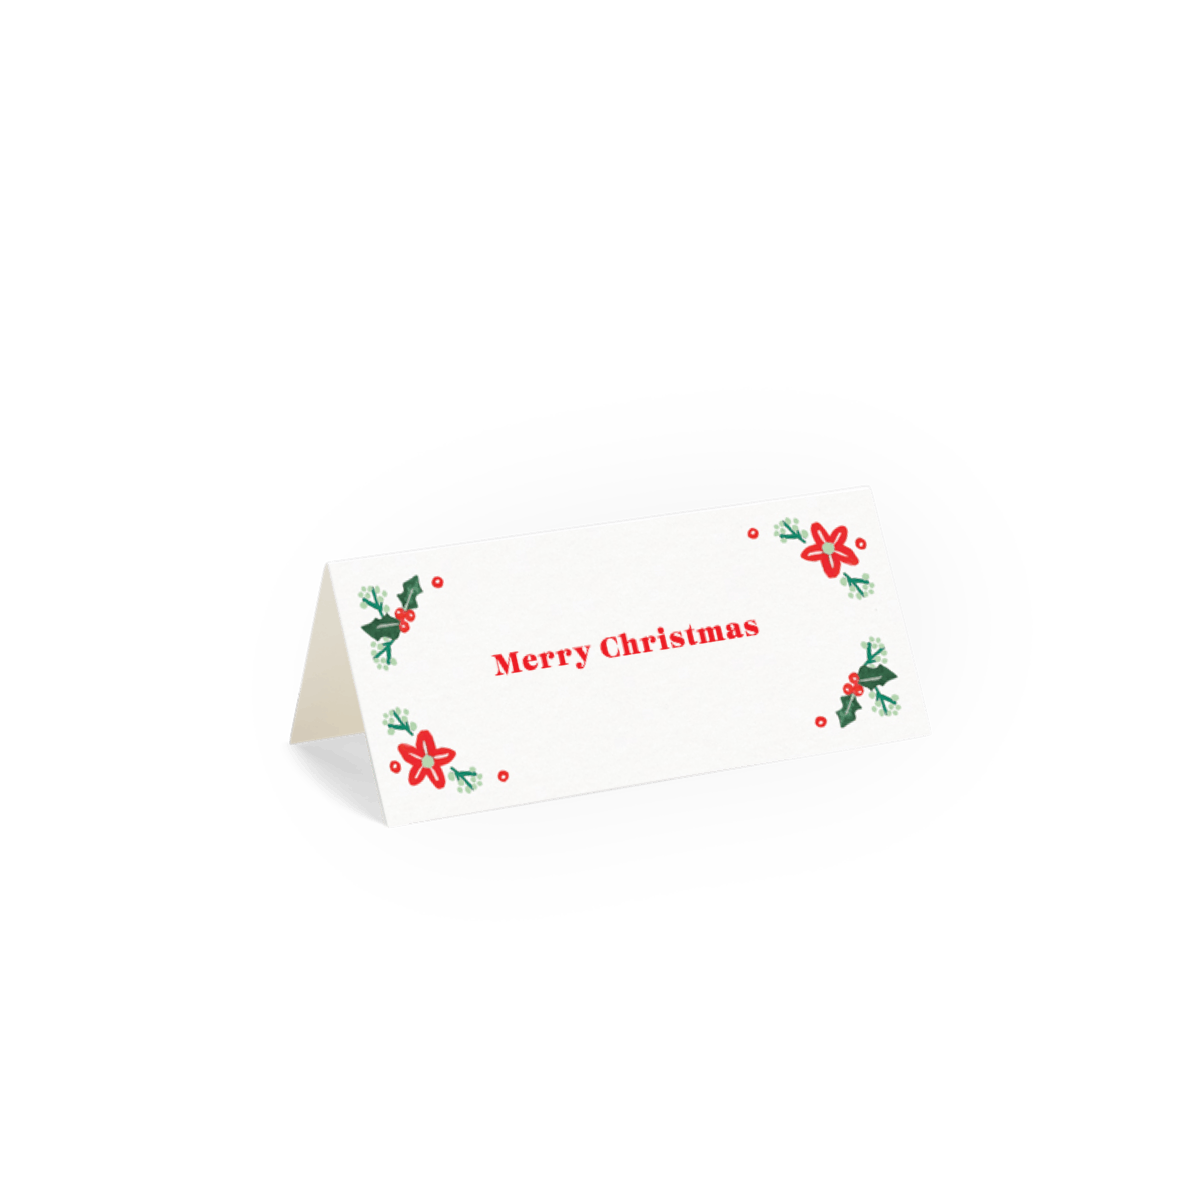 Https%3a%2f%2fwww.papier.com%2fproduct image%2f81344%2f15%2fms christmas 19513 back 1561718809.png?ixlib=rb 1.1